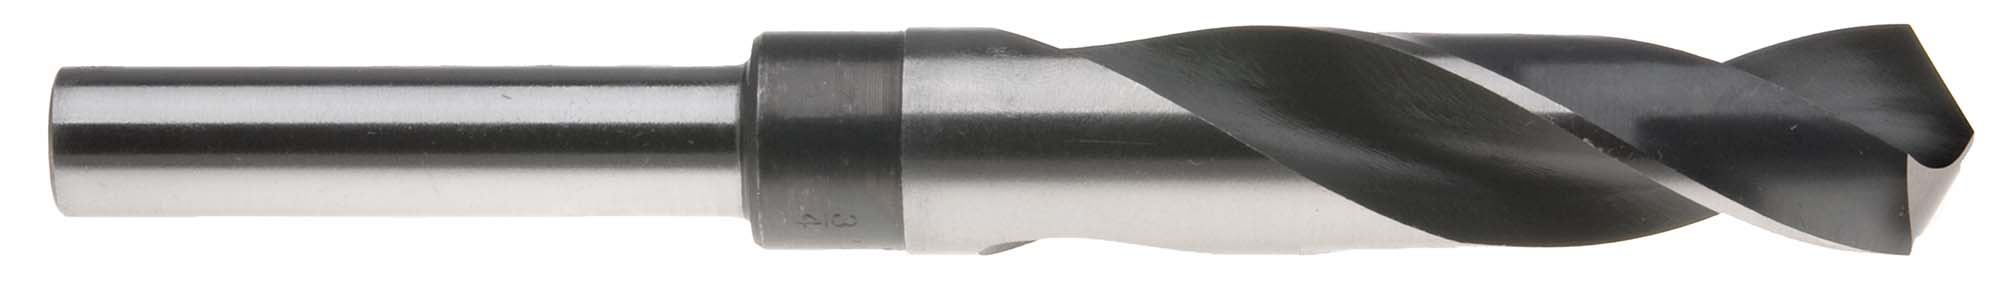 "3/4"" USA Drill Bit with 1/2"" Shank (S+D Type) High Speed Steel"